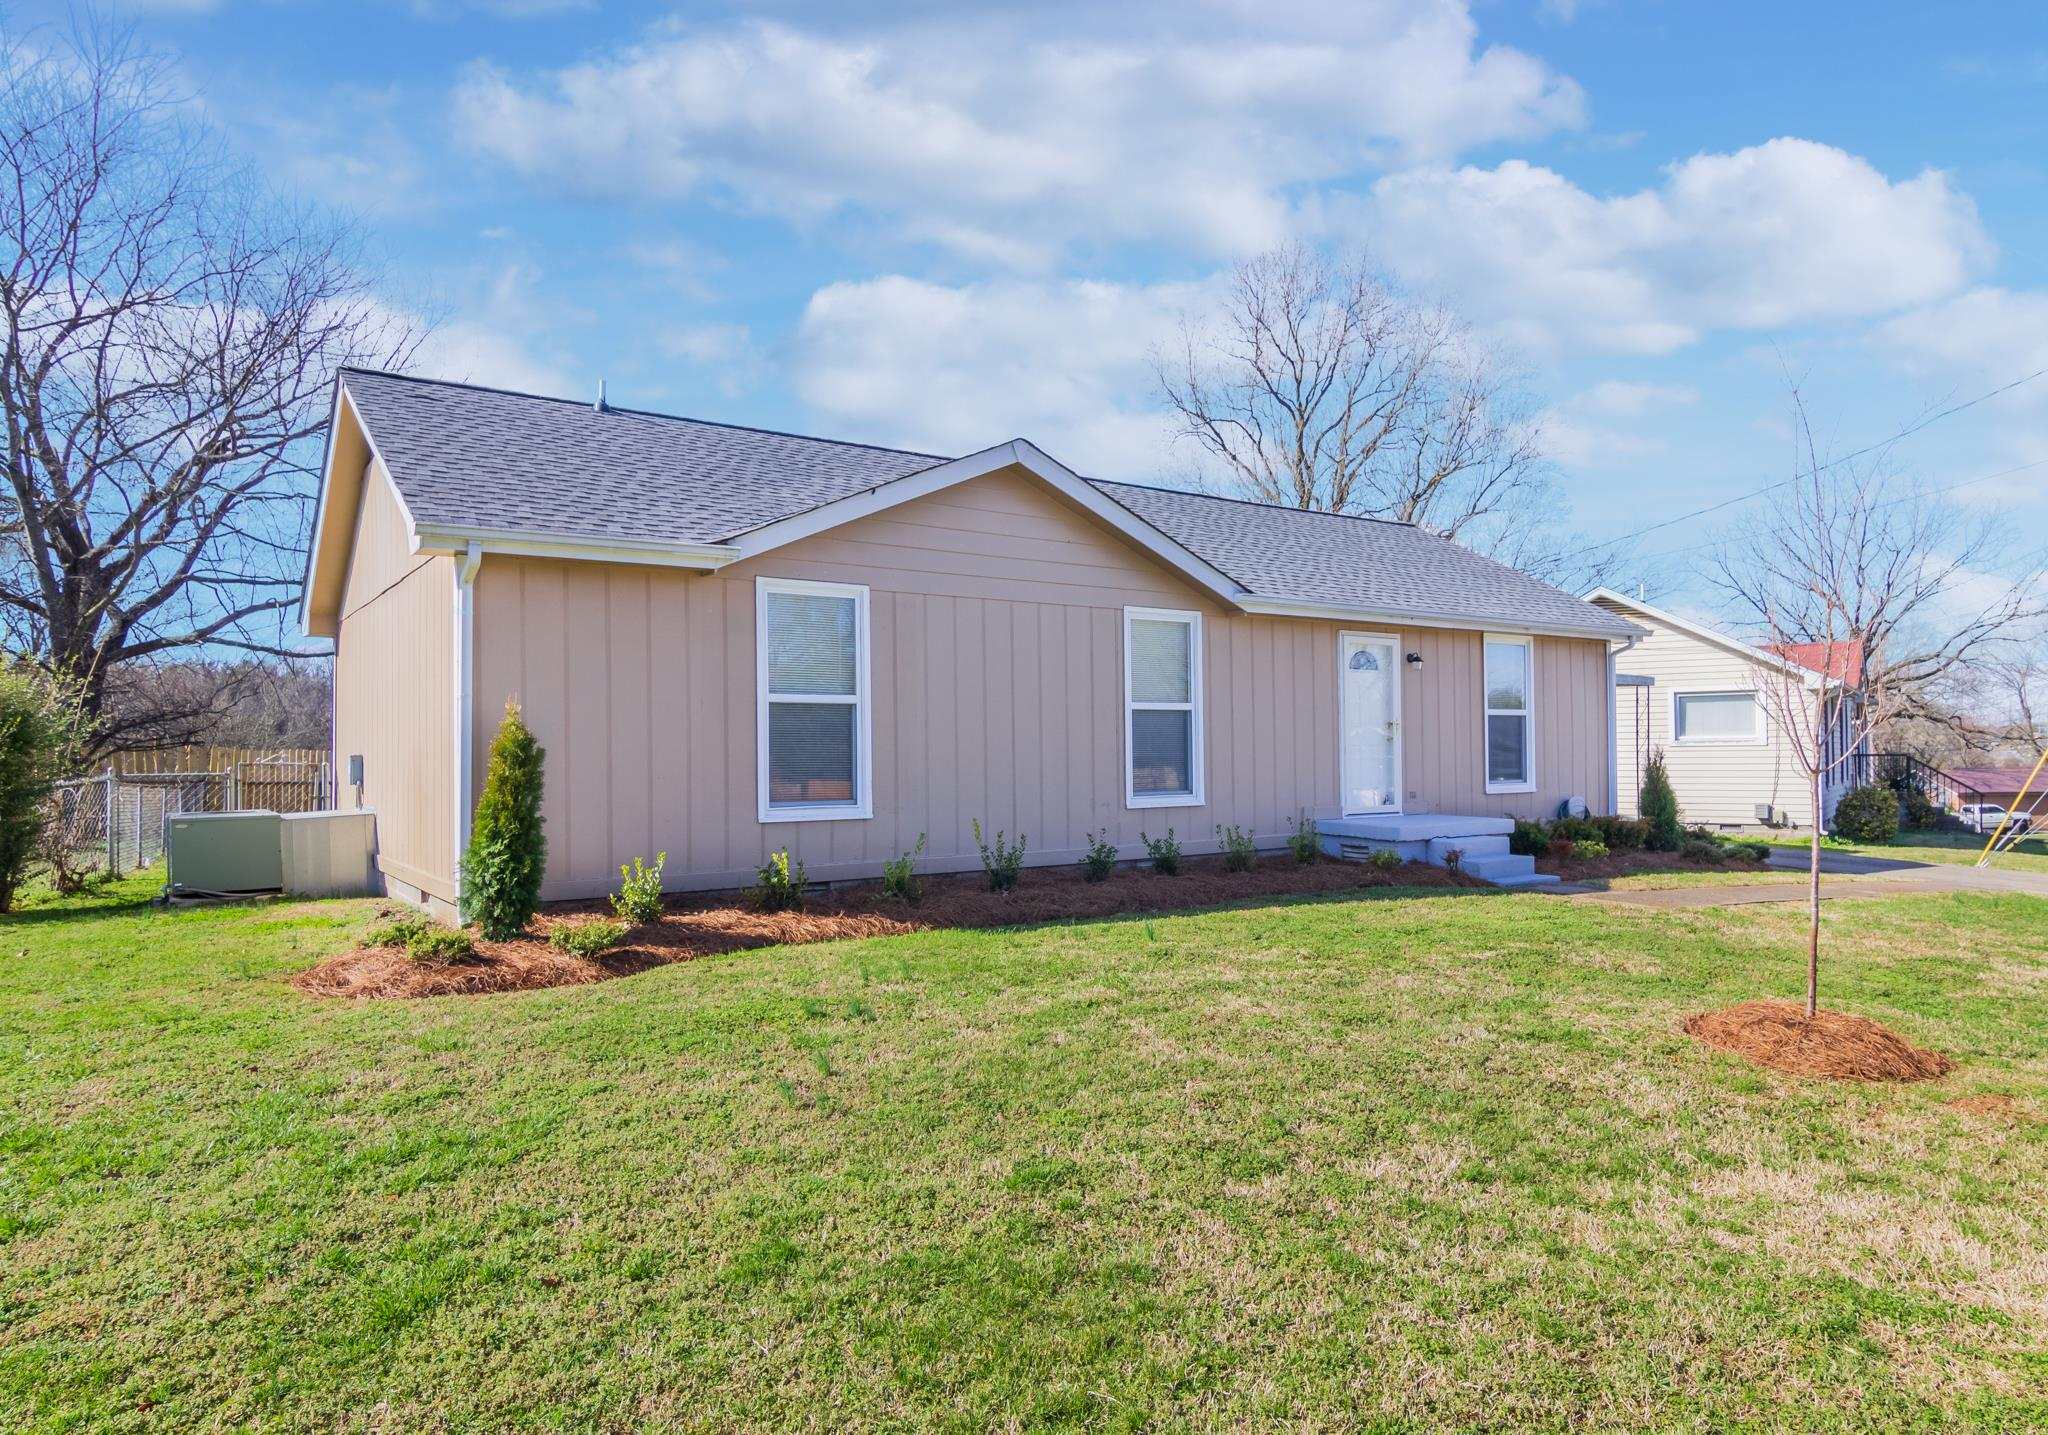 3517 Albee Dr, Hermitage, Tennessee